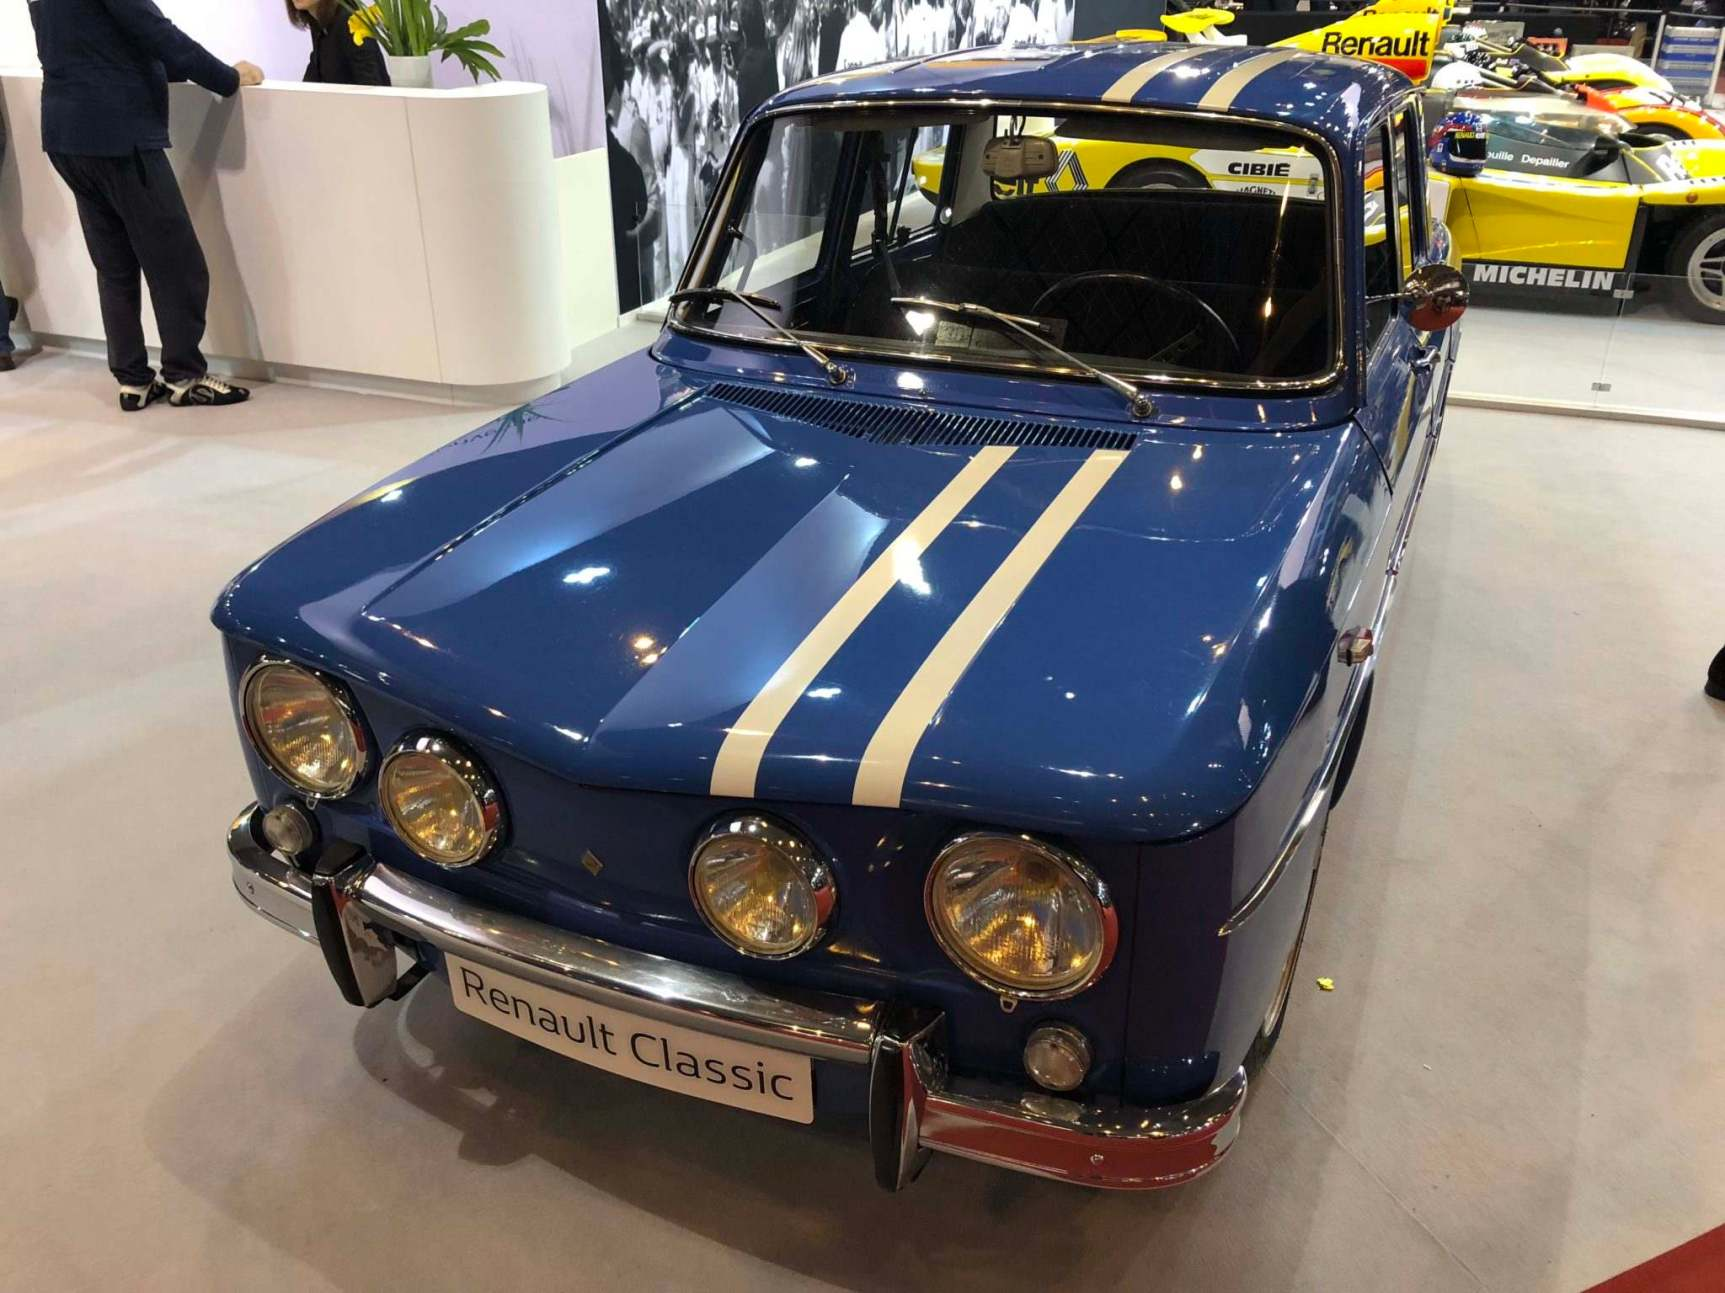 A Legend, the Renault 8 Gordini, part of the Renault Classic Collection